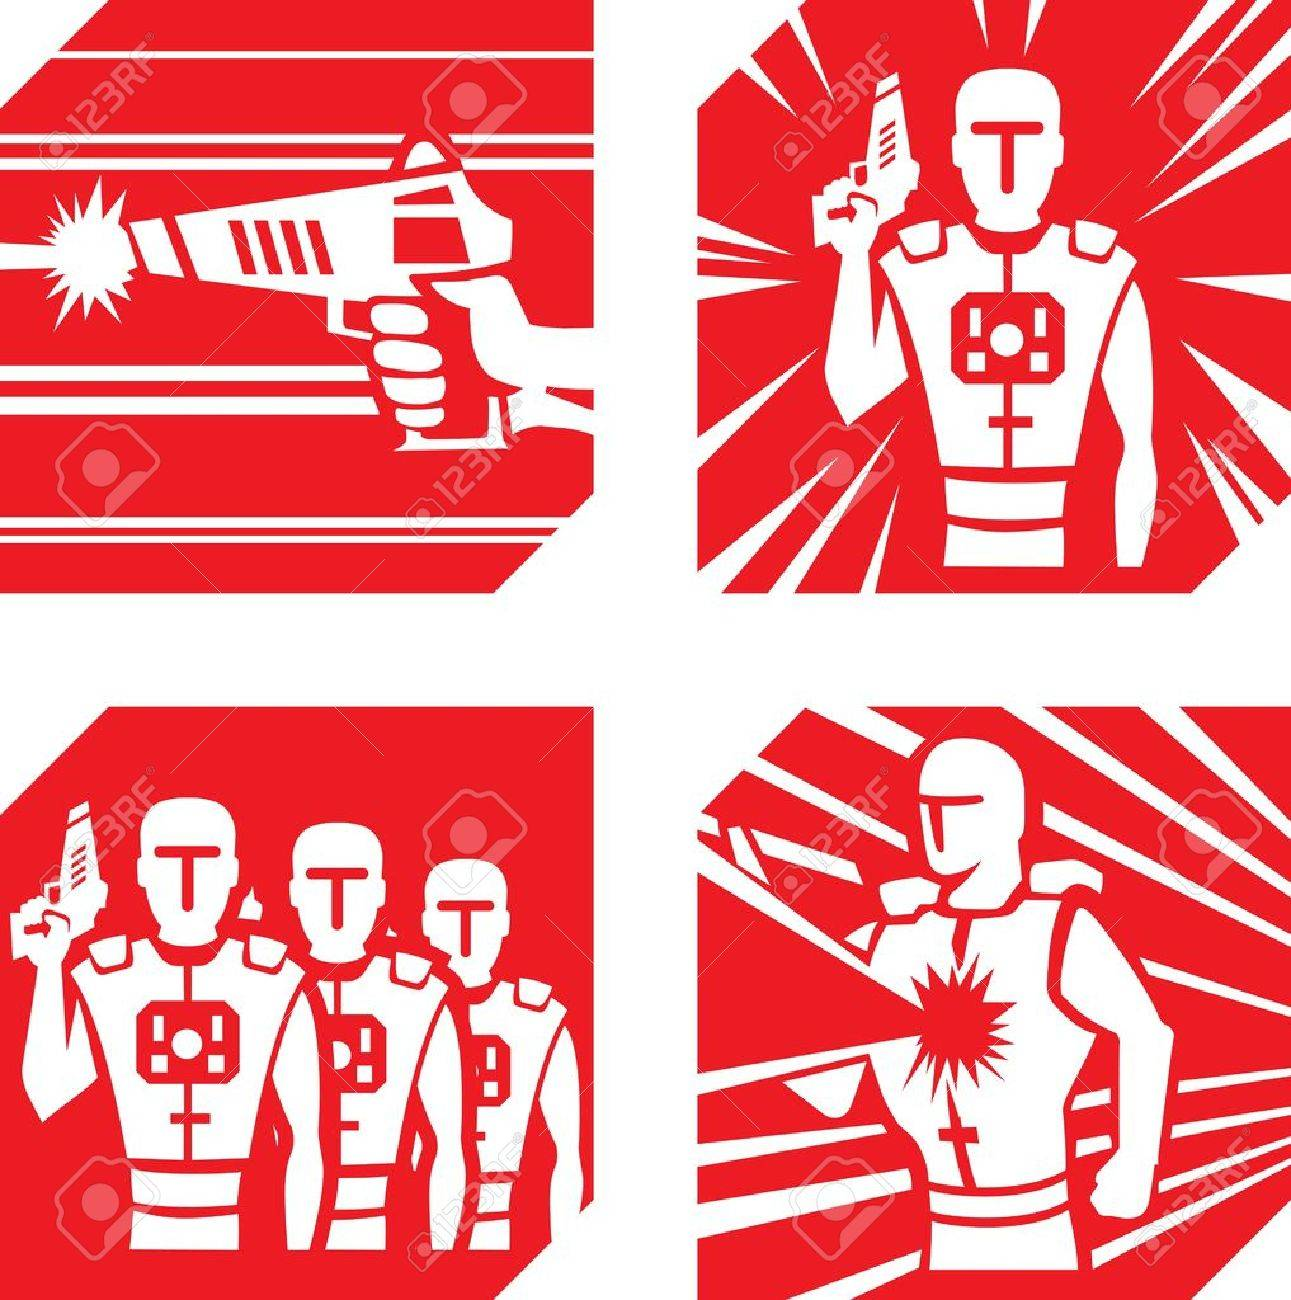 Laser Tag Icons - 17287274